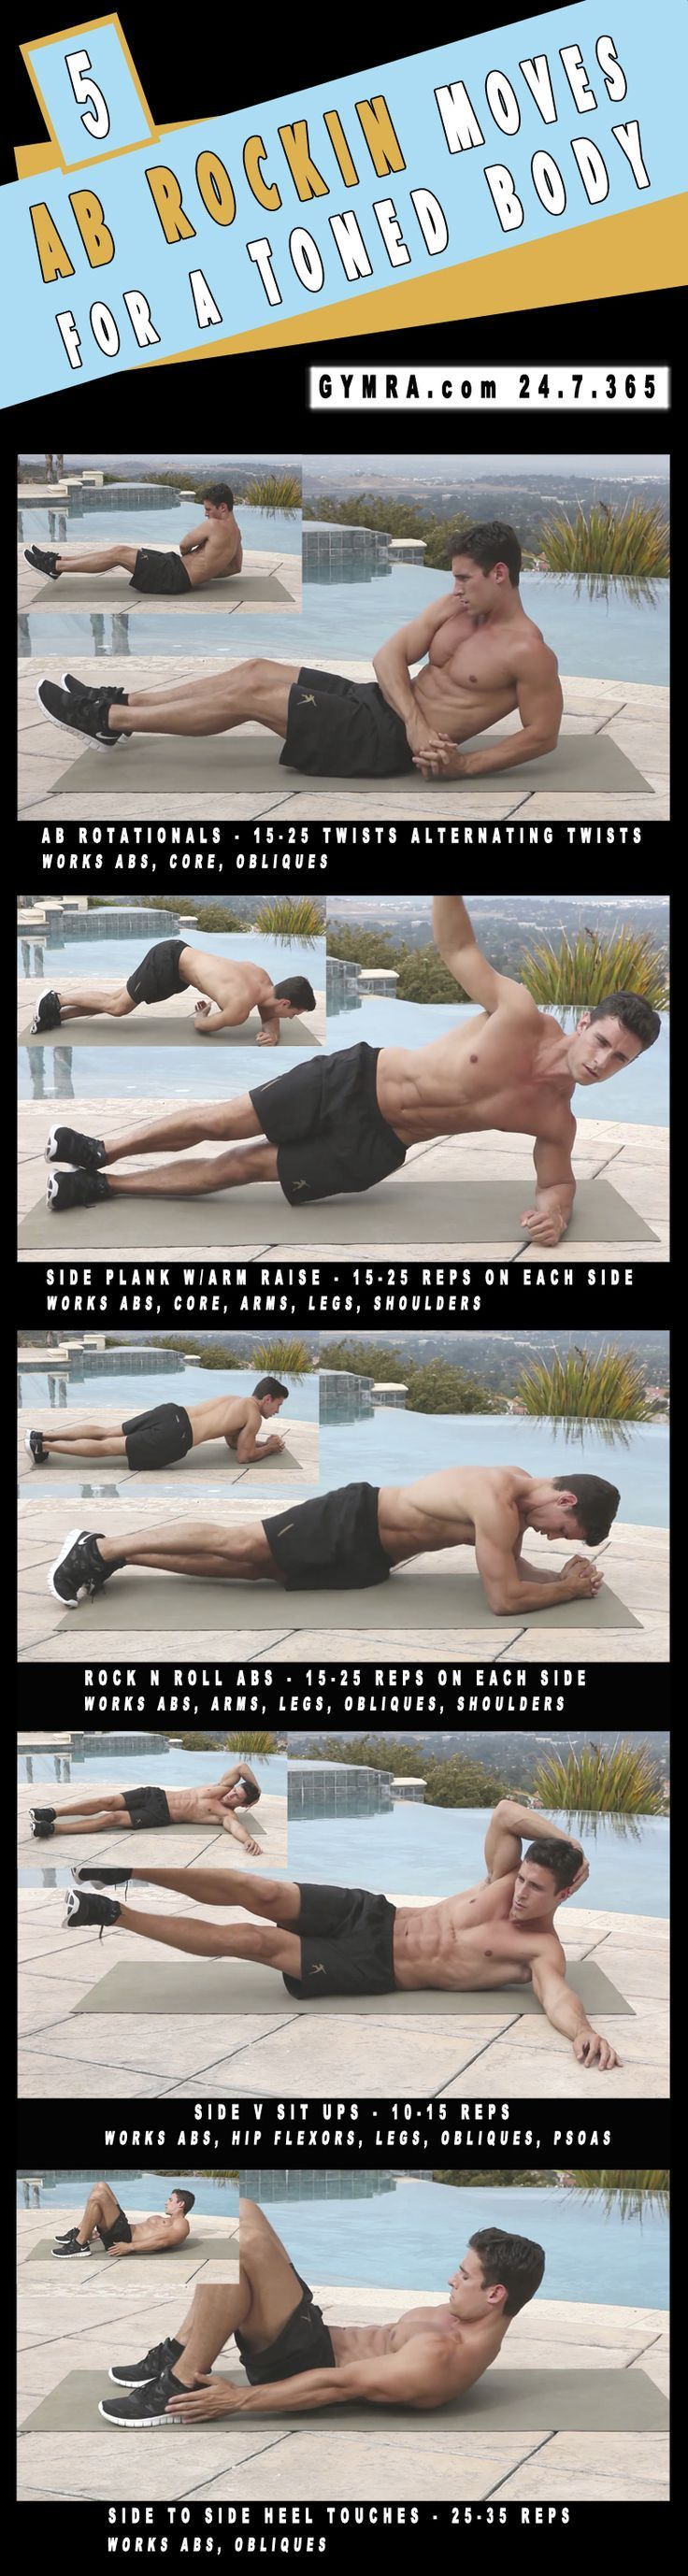 5 Ab Rockin Moves For A Toned Body - Tap the link to shop on our official online store! You can also join our affiliate and/or rewards programs for FREE!